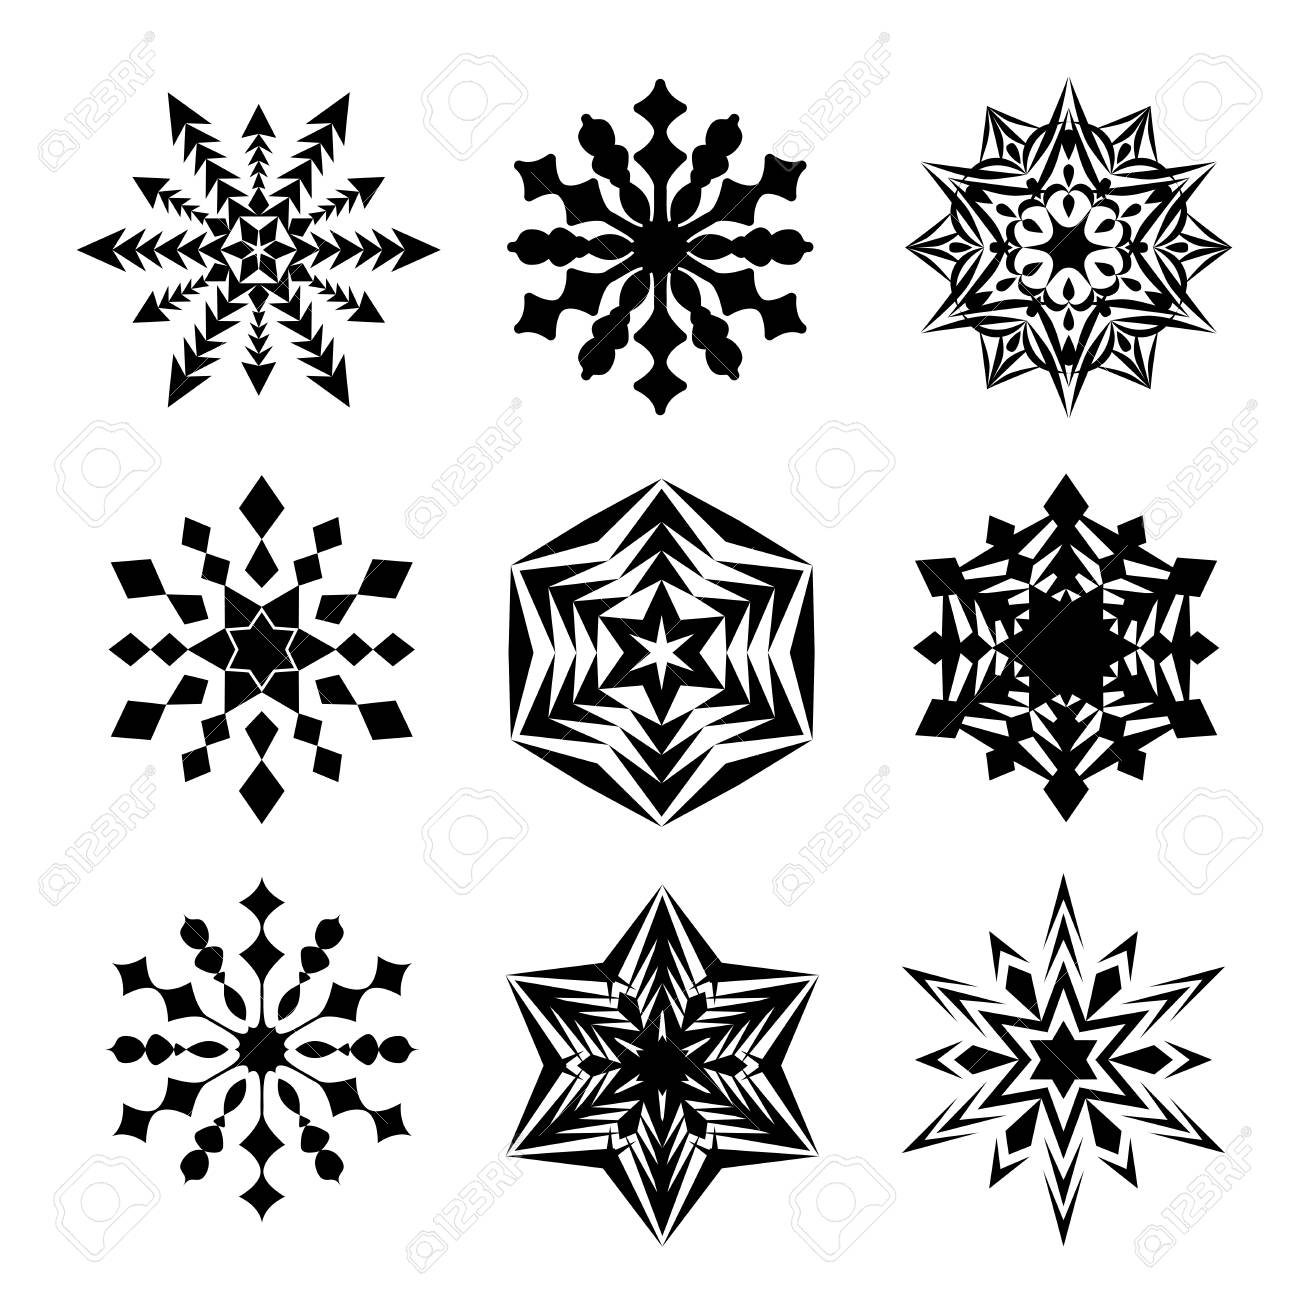 snowflakes isolated on white background black snow shape happy new year or christmas card